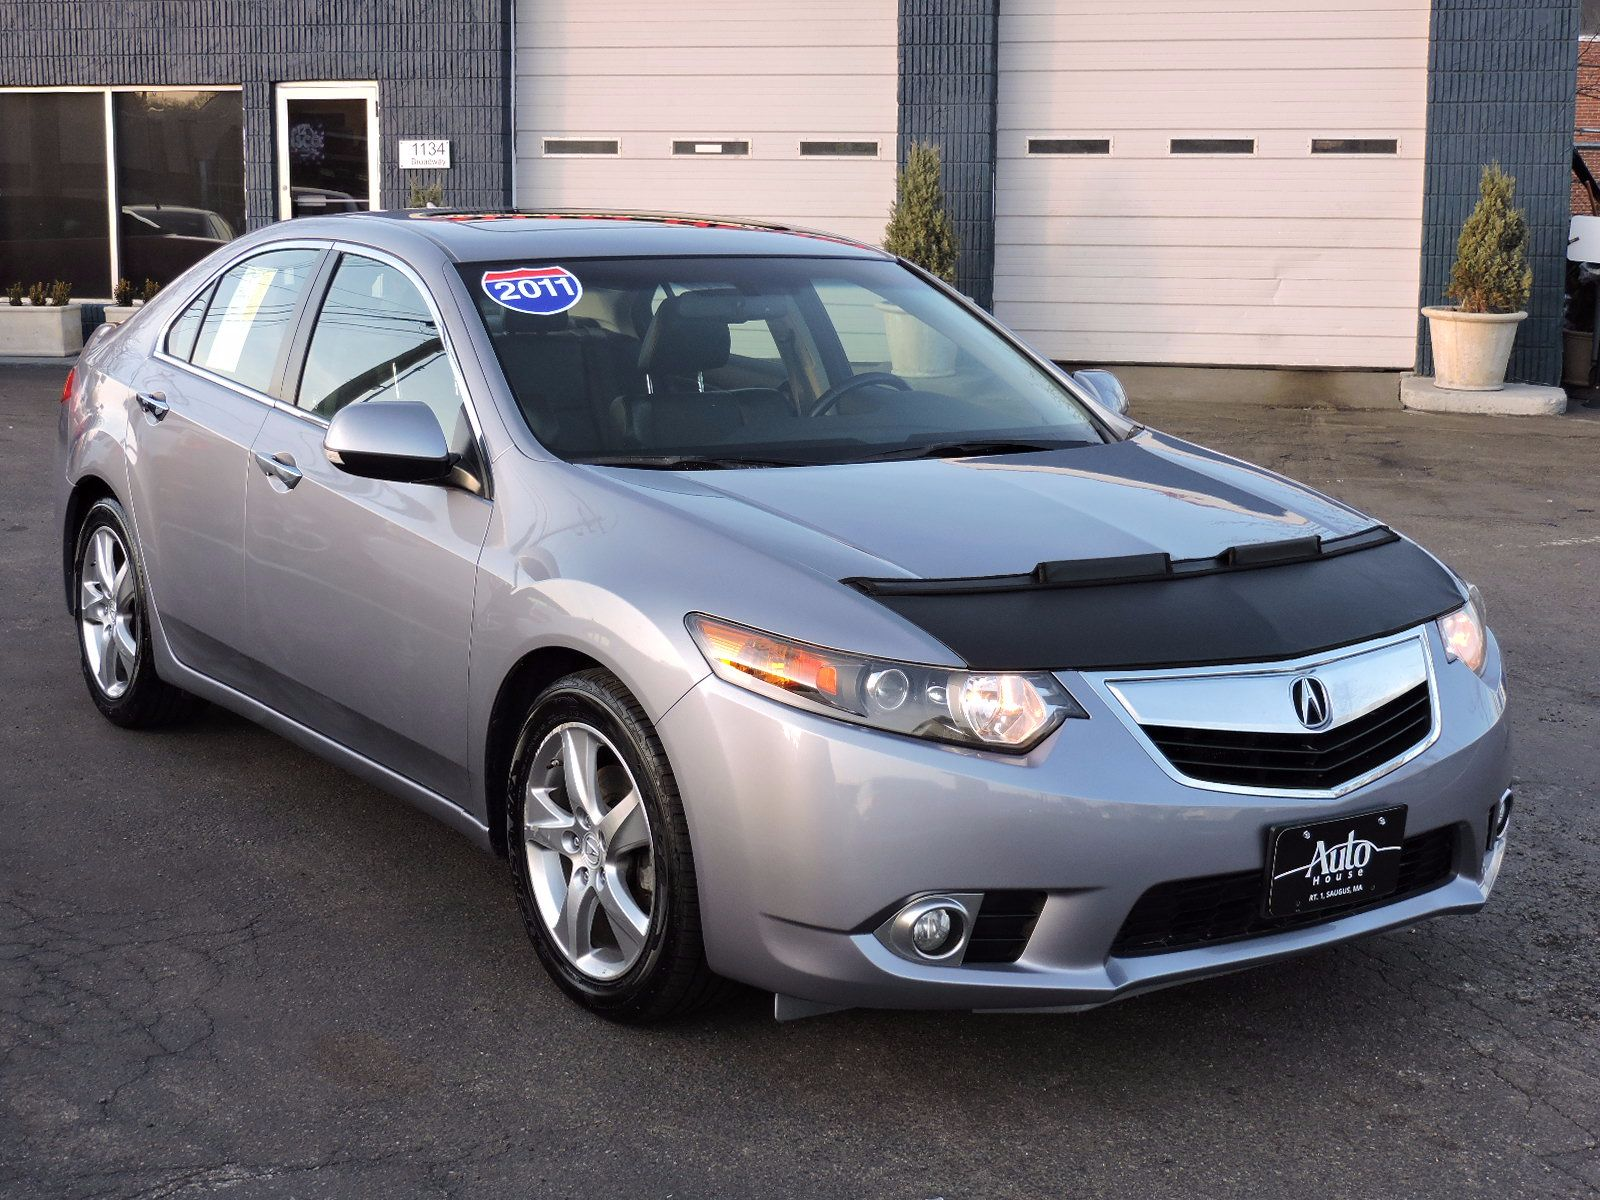 2011 acura tsx 6 speed manual